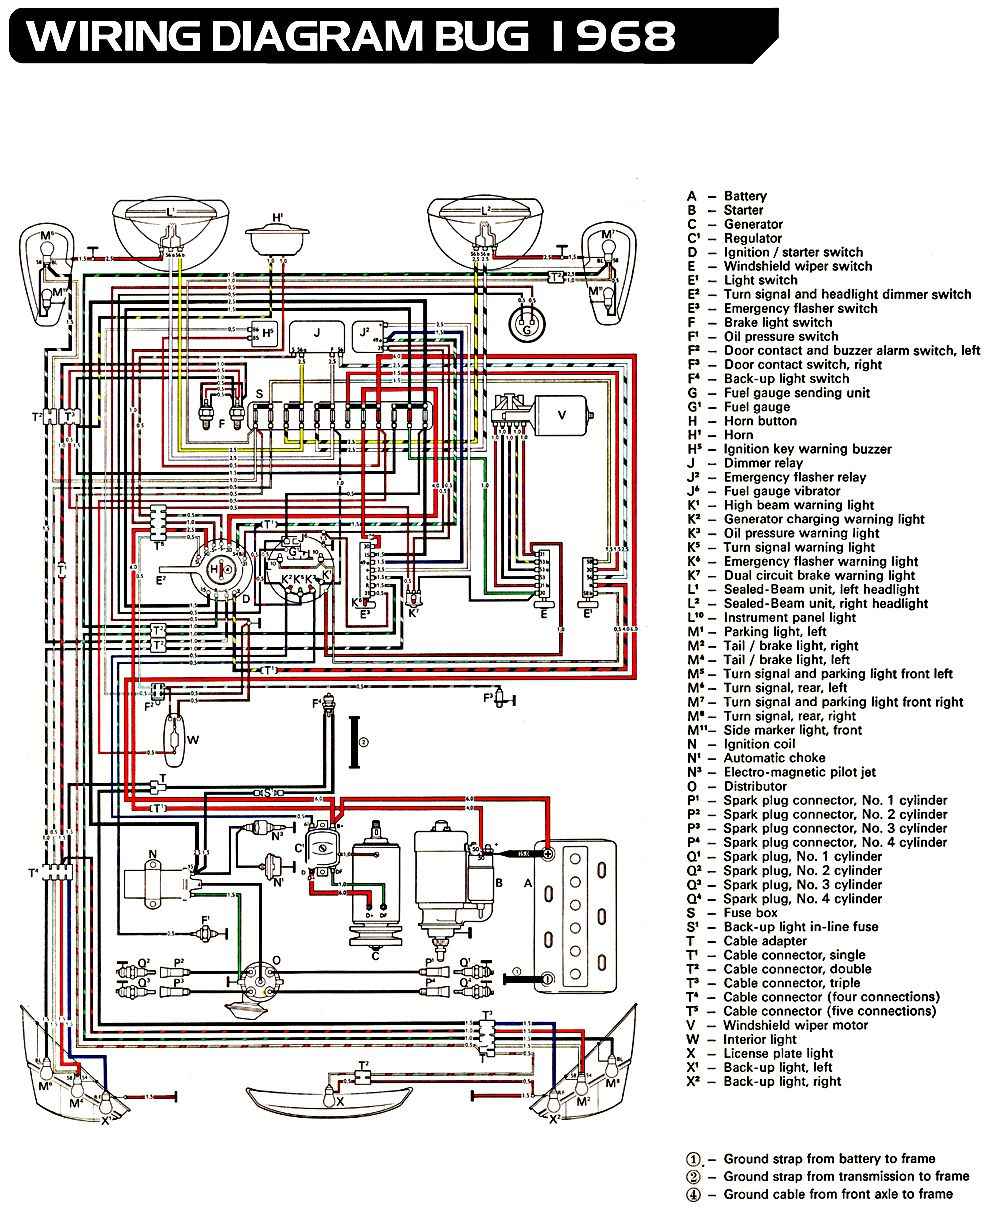 3a1908112d3826270ed5e3be362292bf vw bug ignition wiring diagram 73 vw wiring diagram free 1969 vw bug wiring harness at reclaimingppi.co